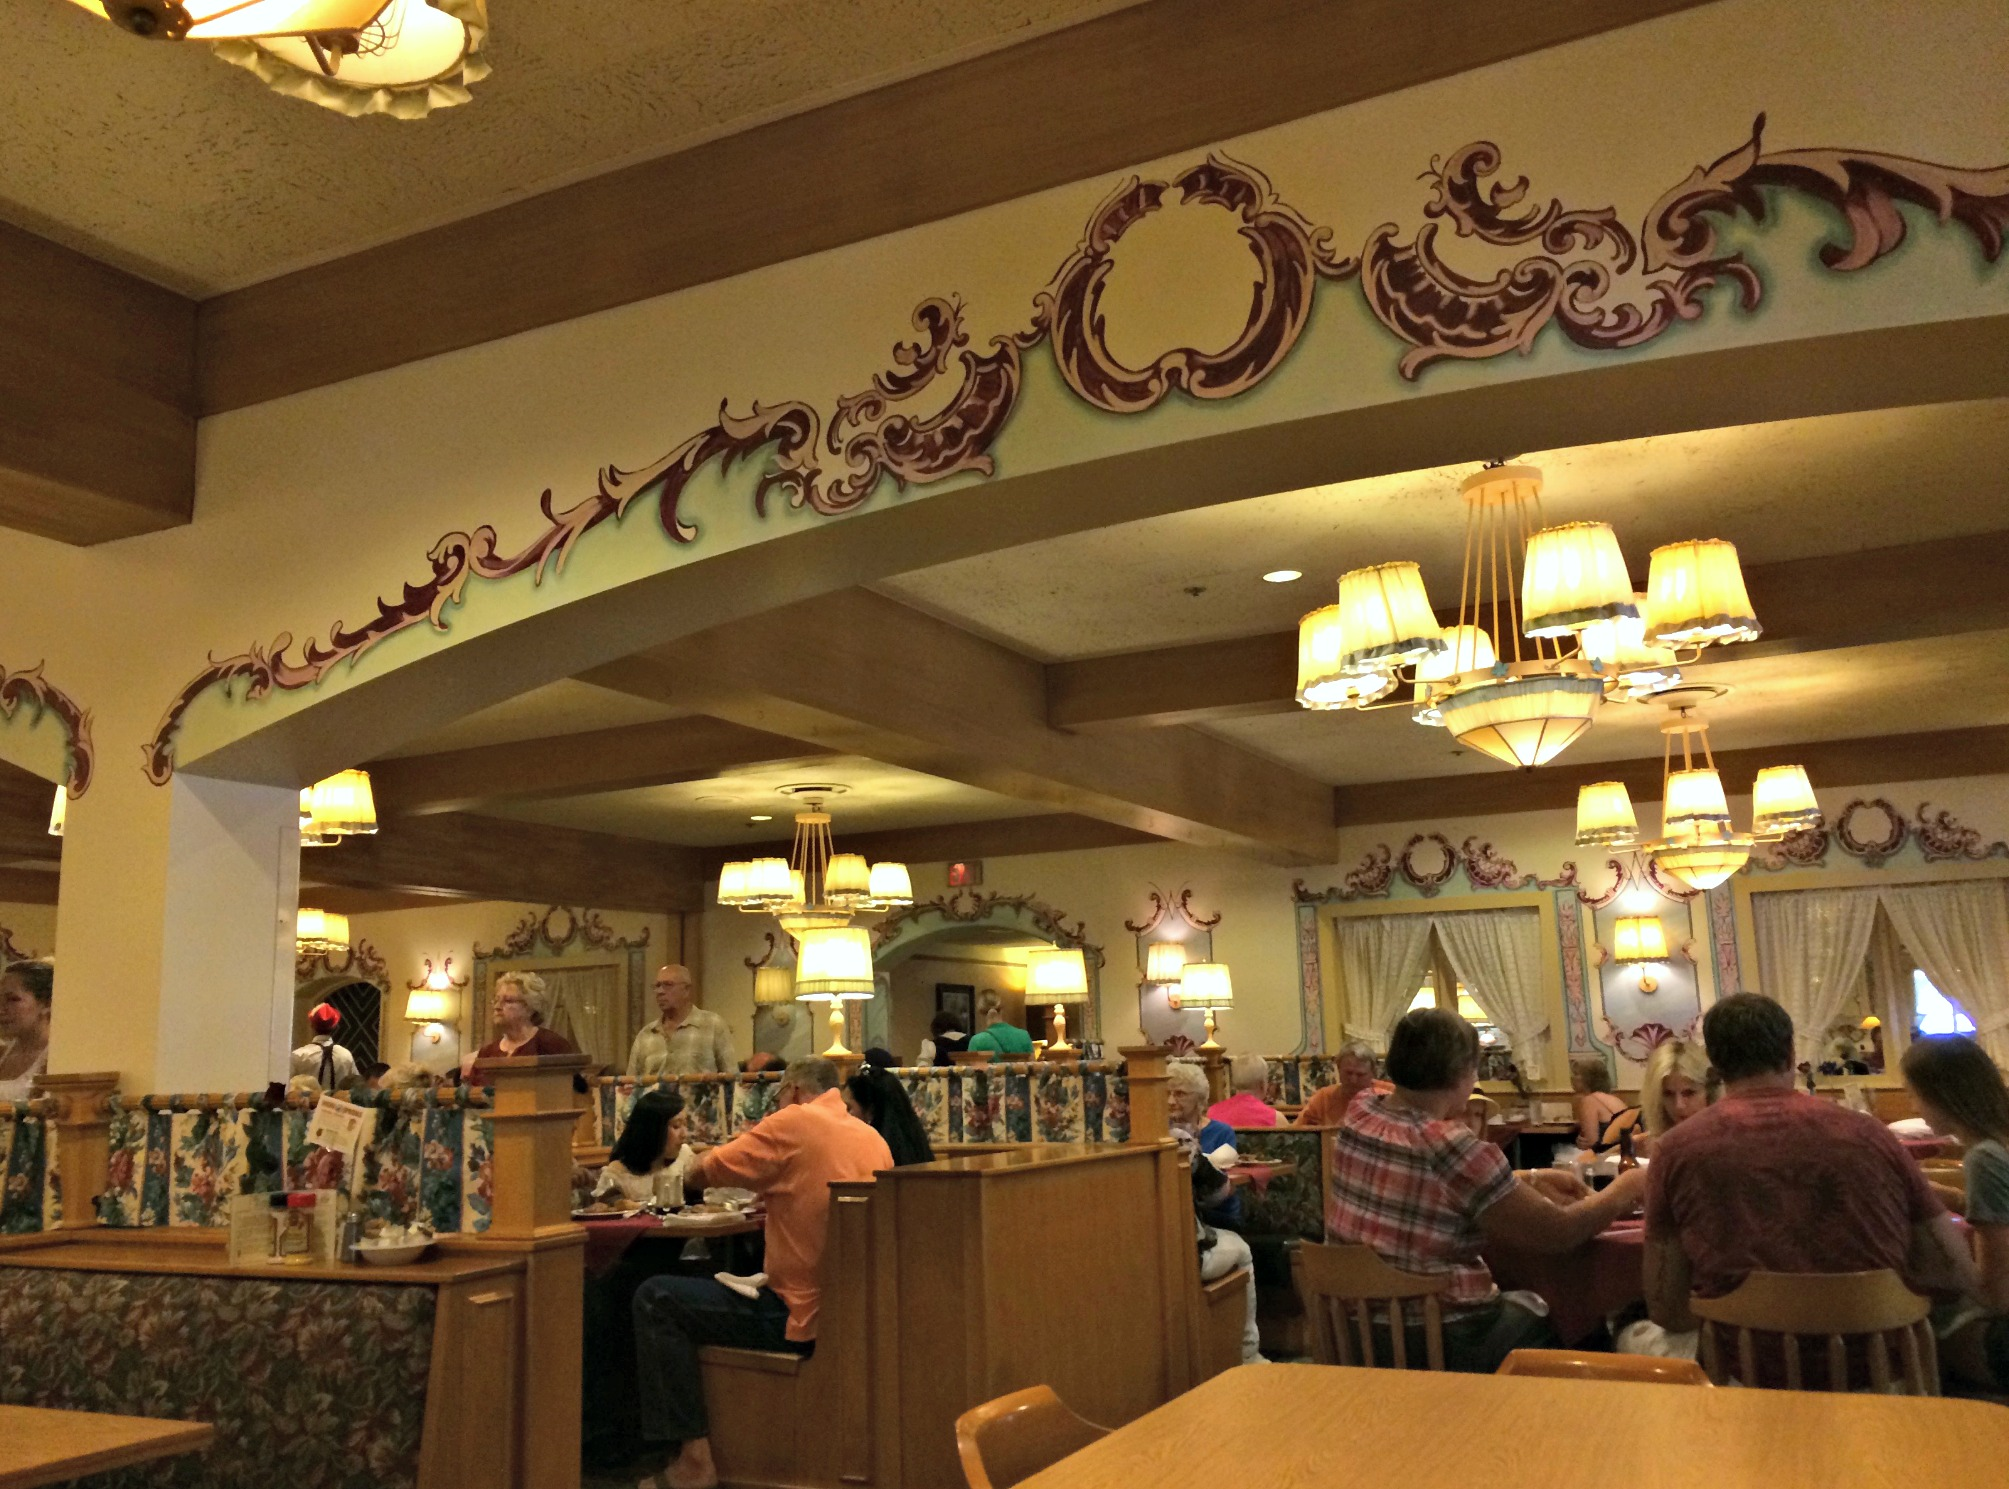 Frankenmuth Bavarian Inn inside